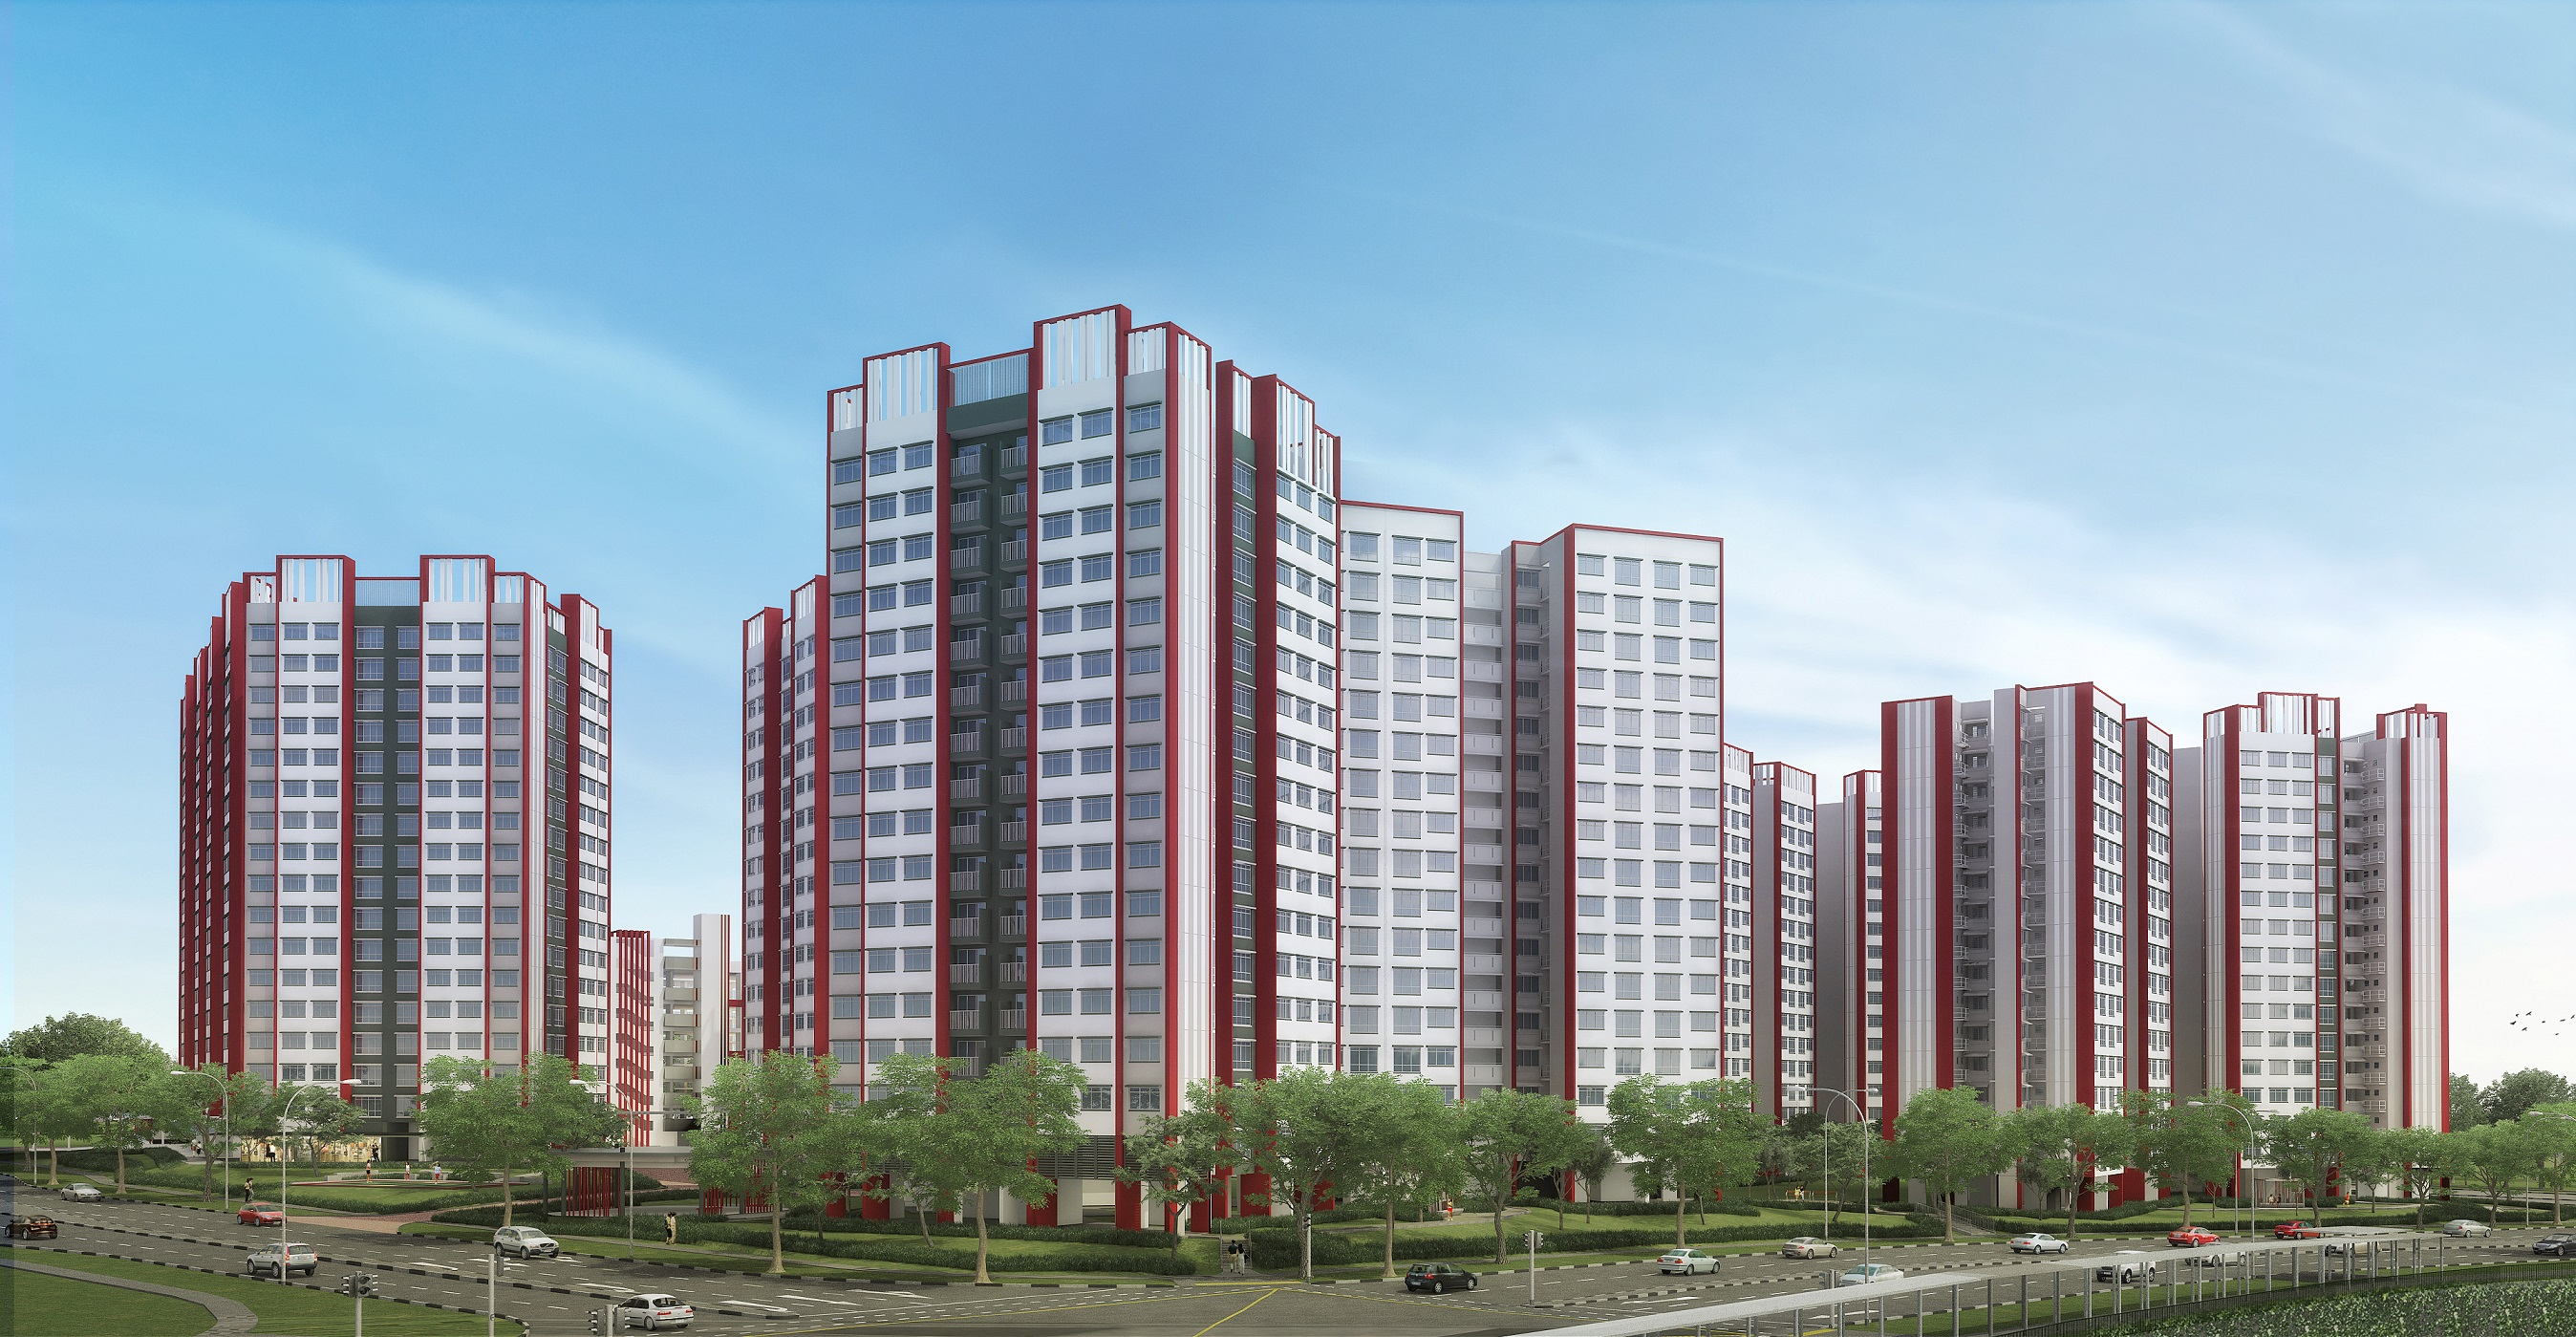 HDB is organising roadshow to familiarise homeowners about their new abodes.